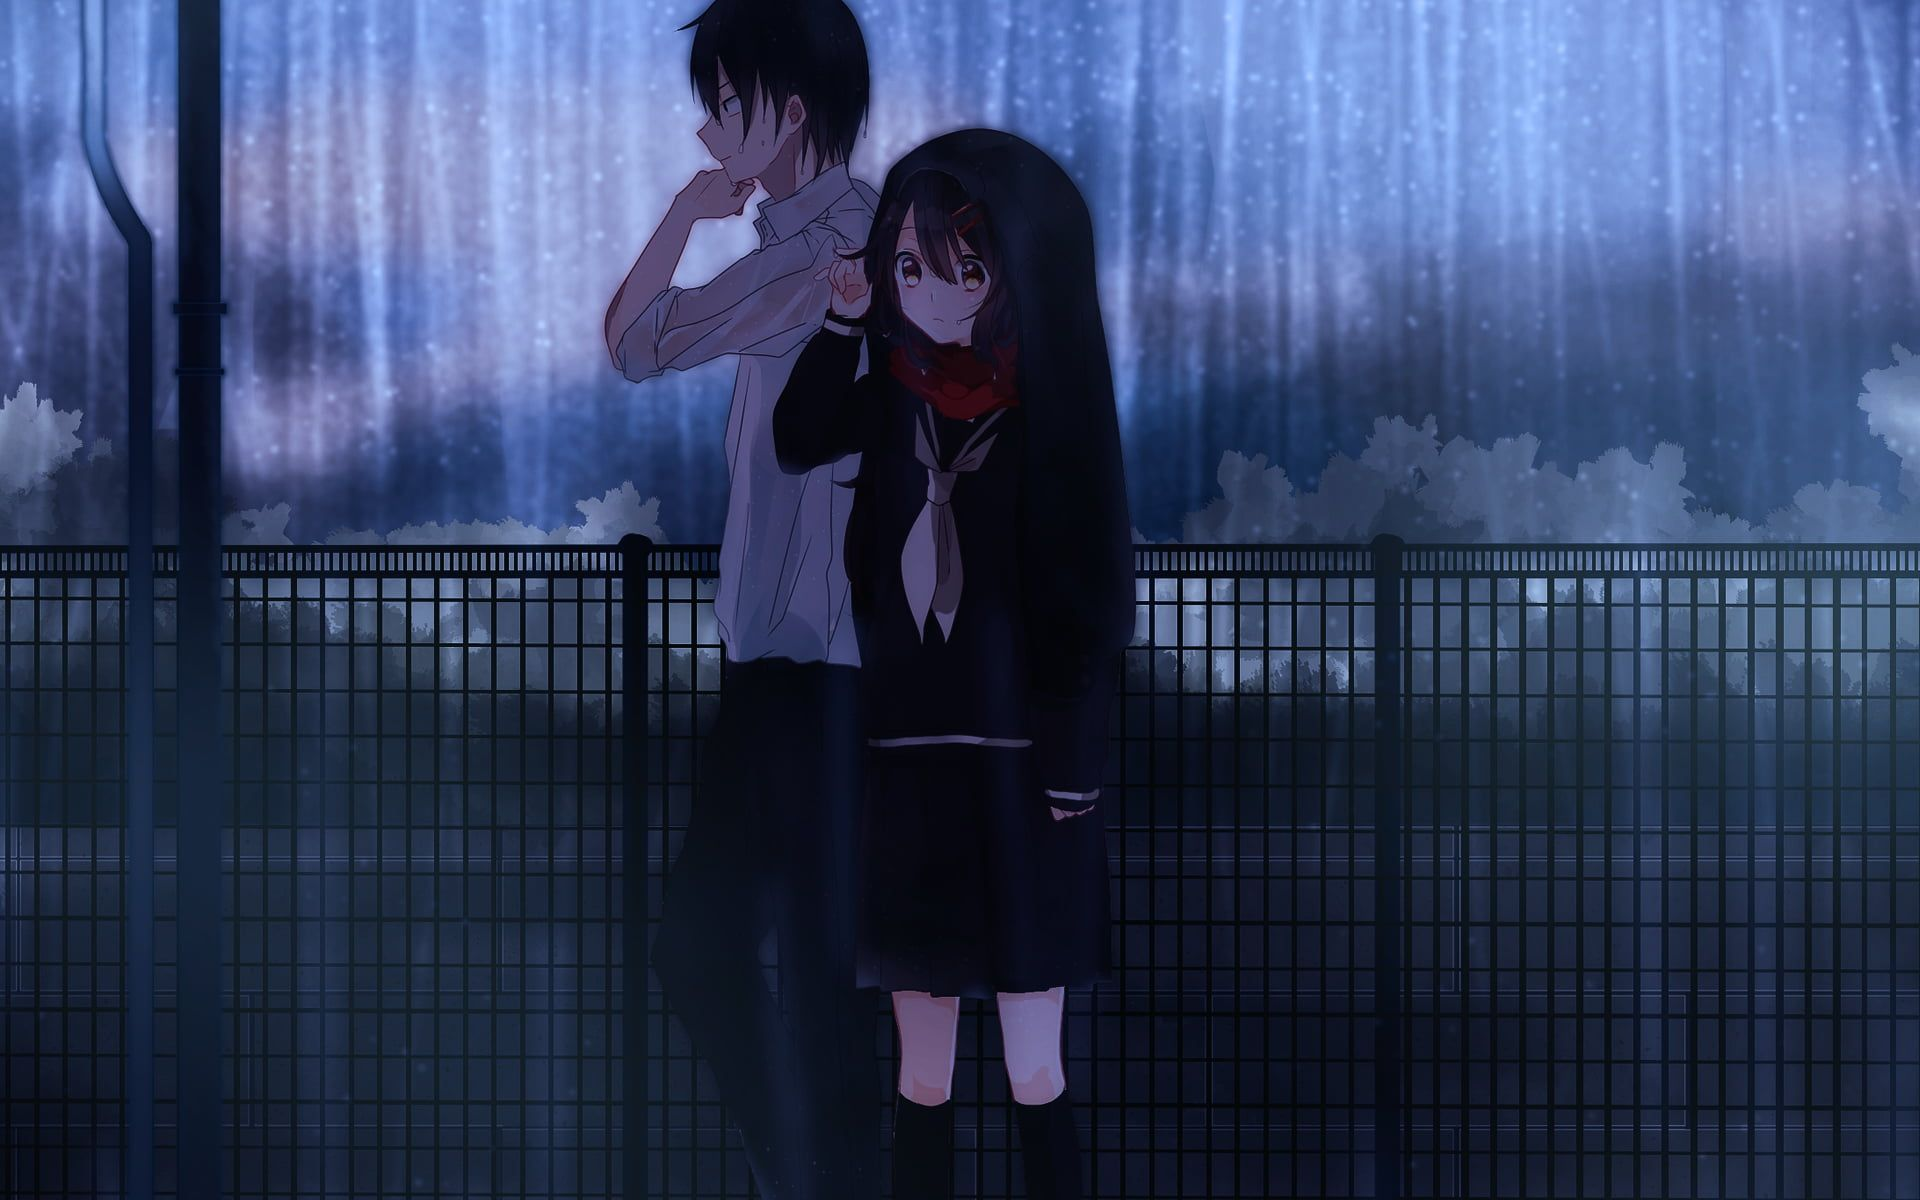 Sad Anime Couples Wallpapers Top Free Sad Anime Couples Backgrounds Wallpaperaccess